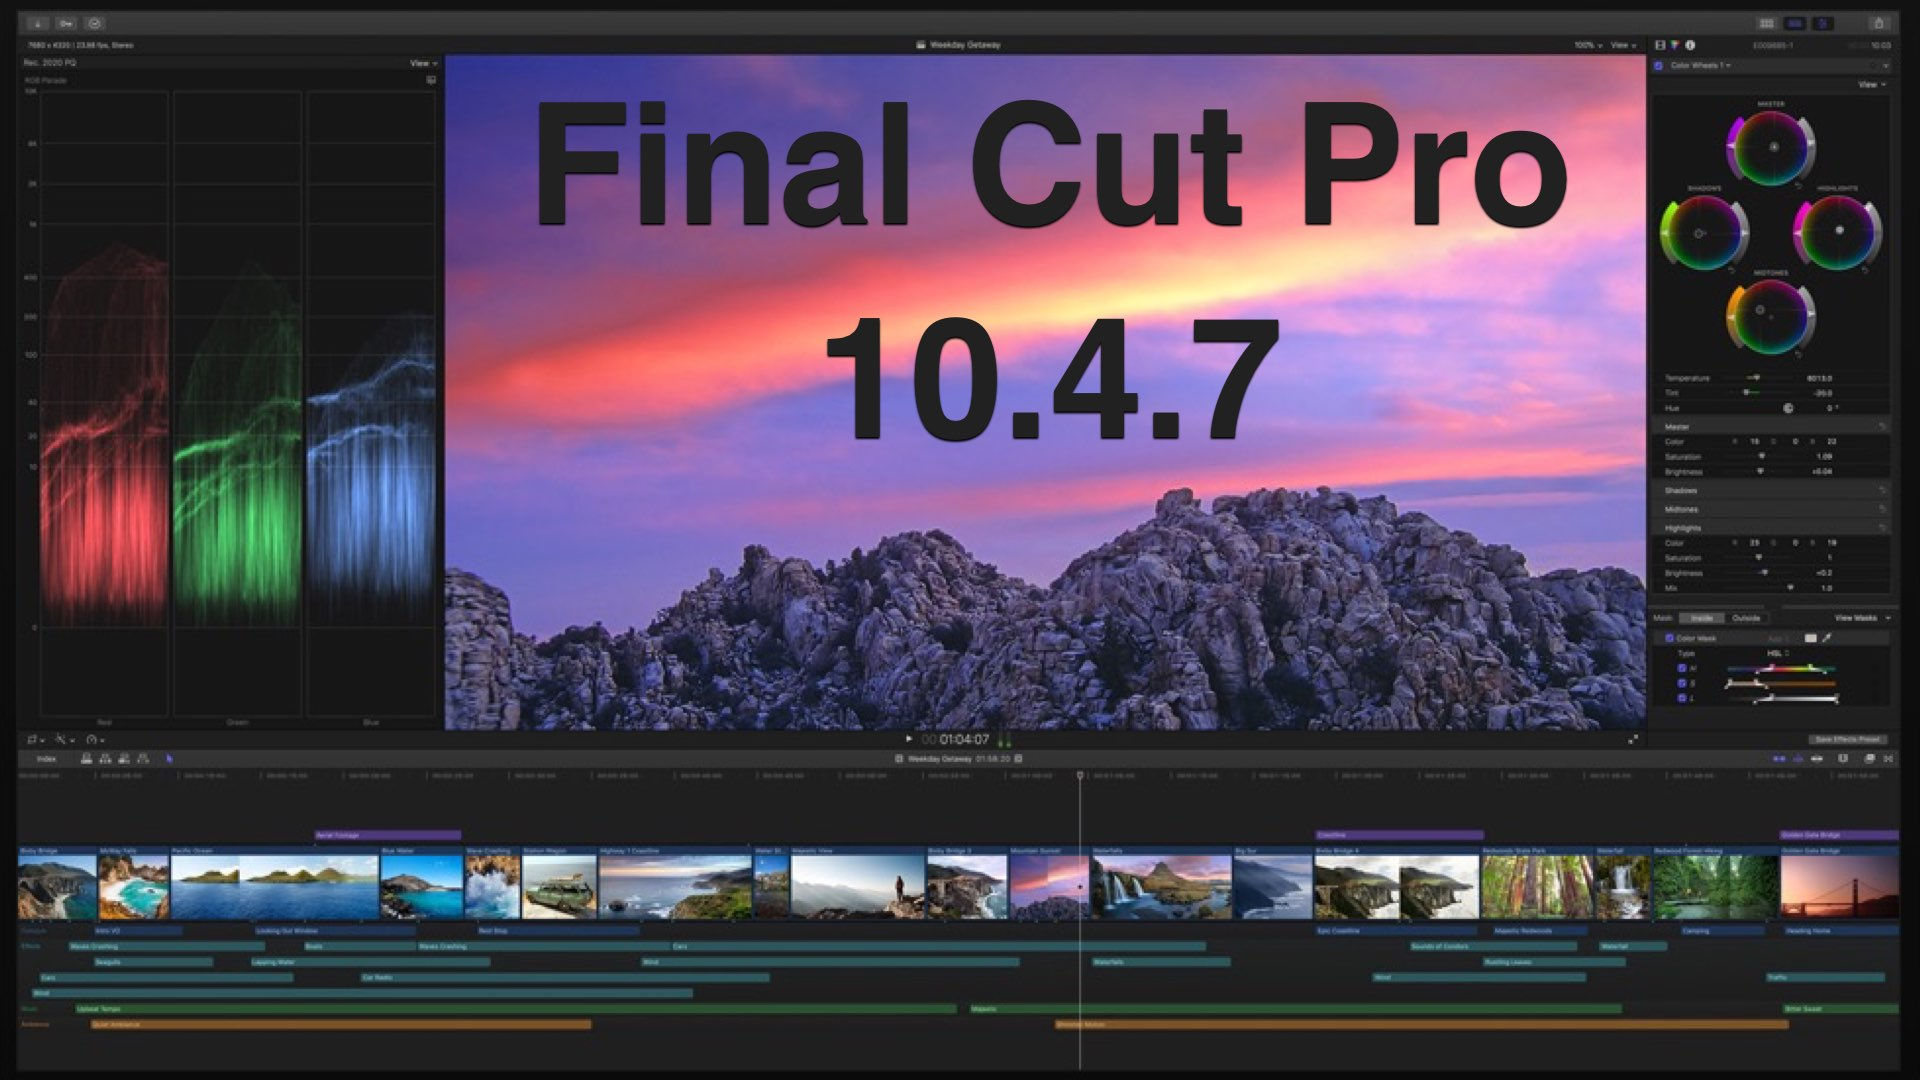 Part 1: Final Cut Pro Price You Need to Know